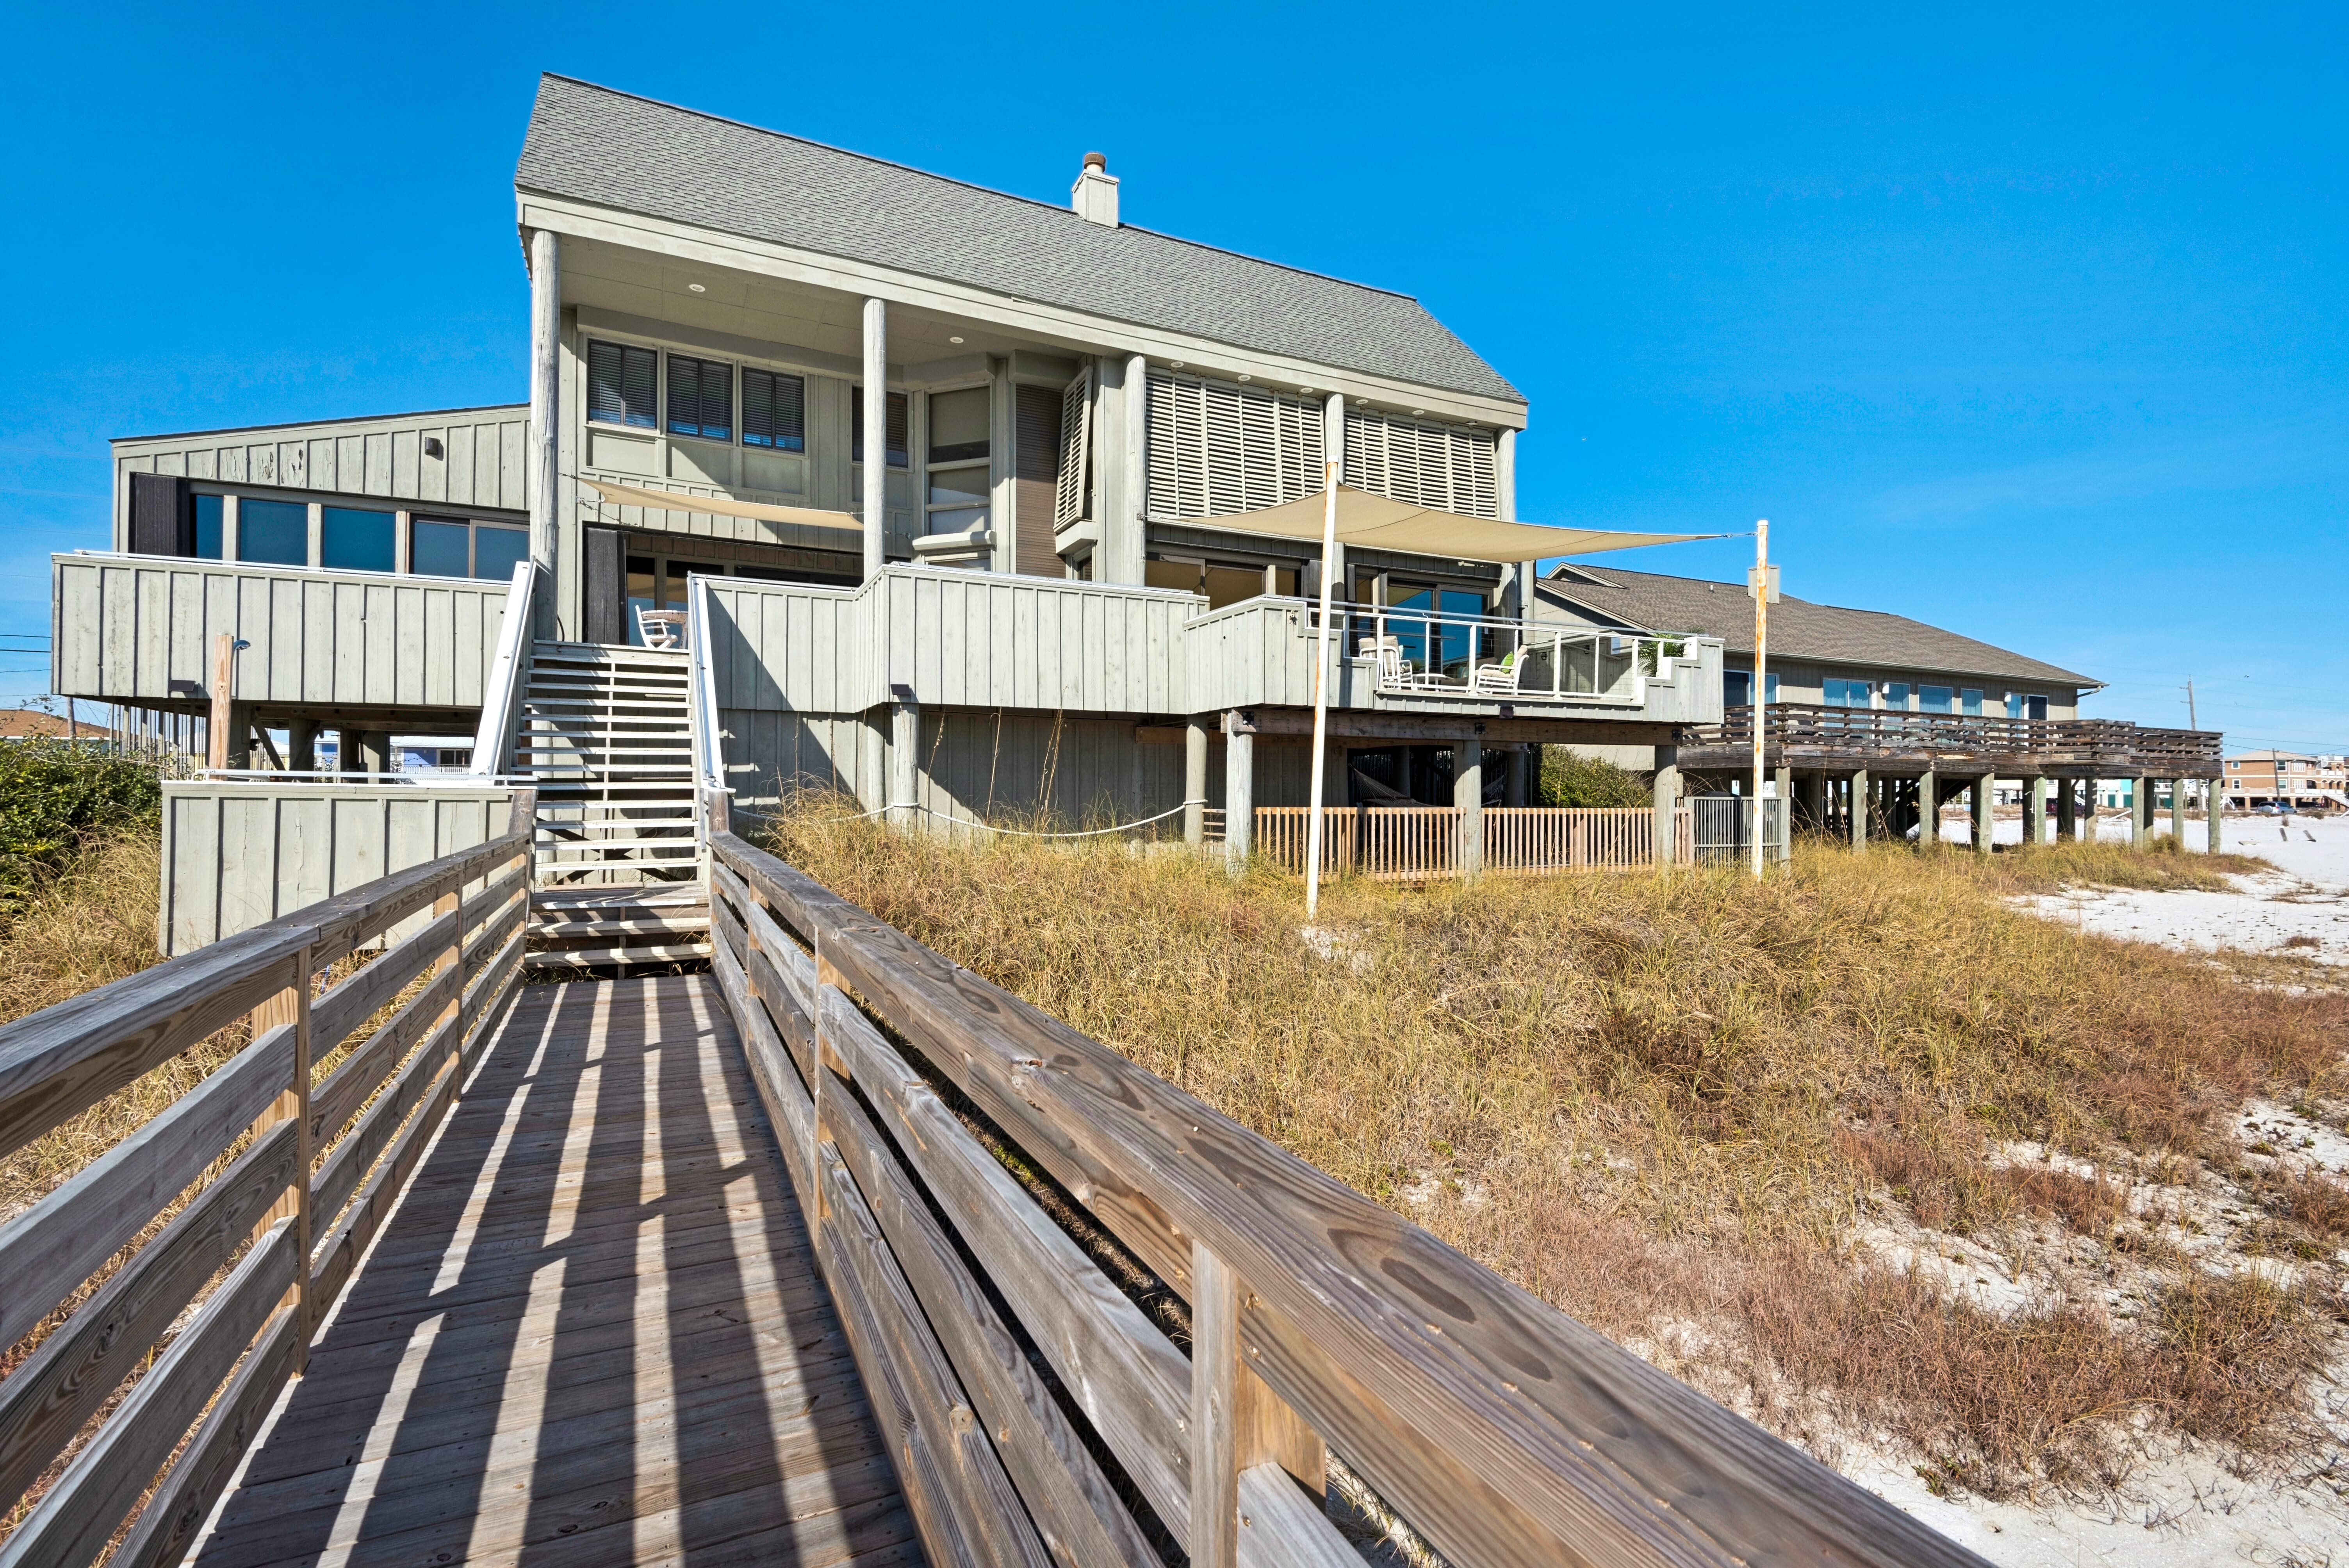 7527 Gulf Blvd - The Oyster House/Cottage rental in Navarre Beach House Rentals in Navarre Florida - #66